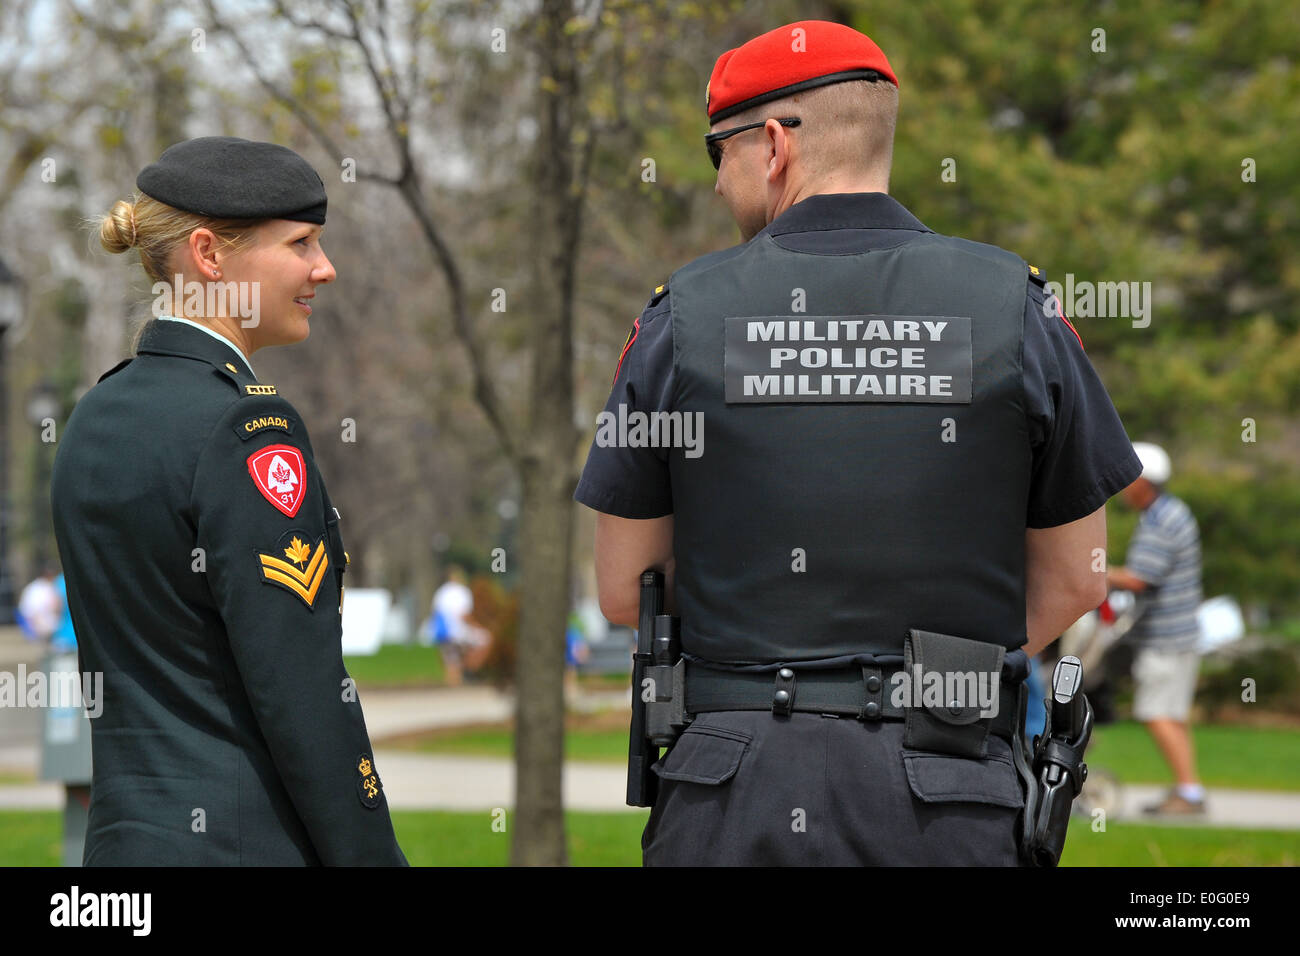 Canada Military Police Stock Photos & Canada Military Police Stock